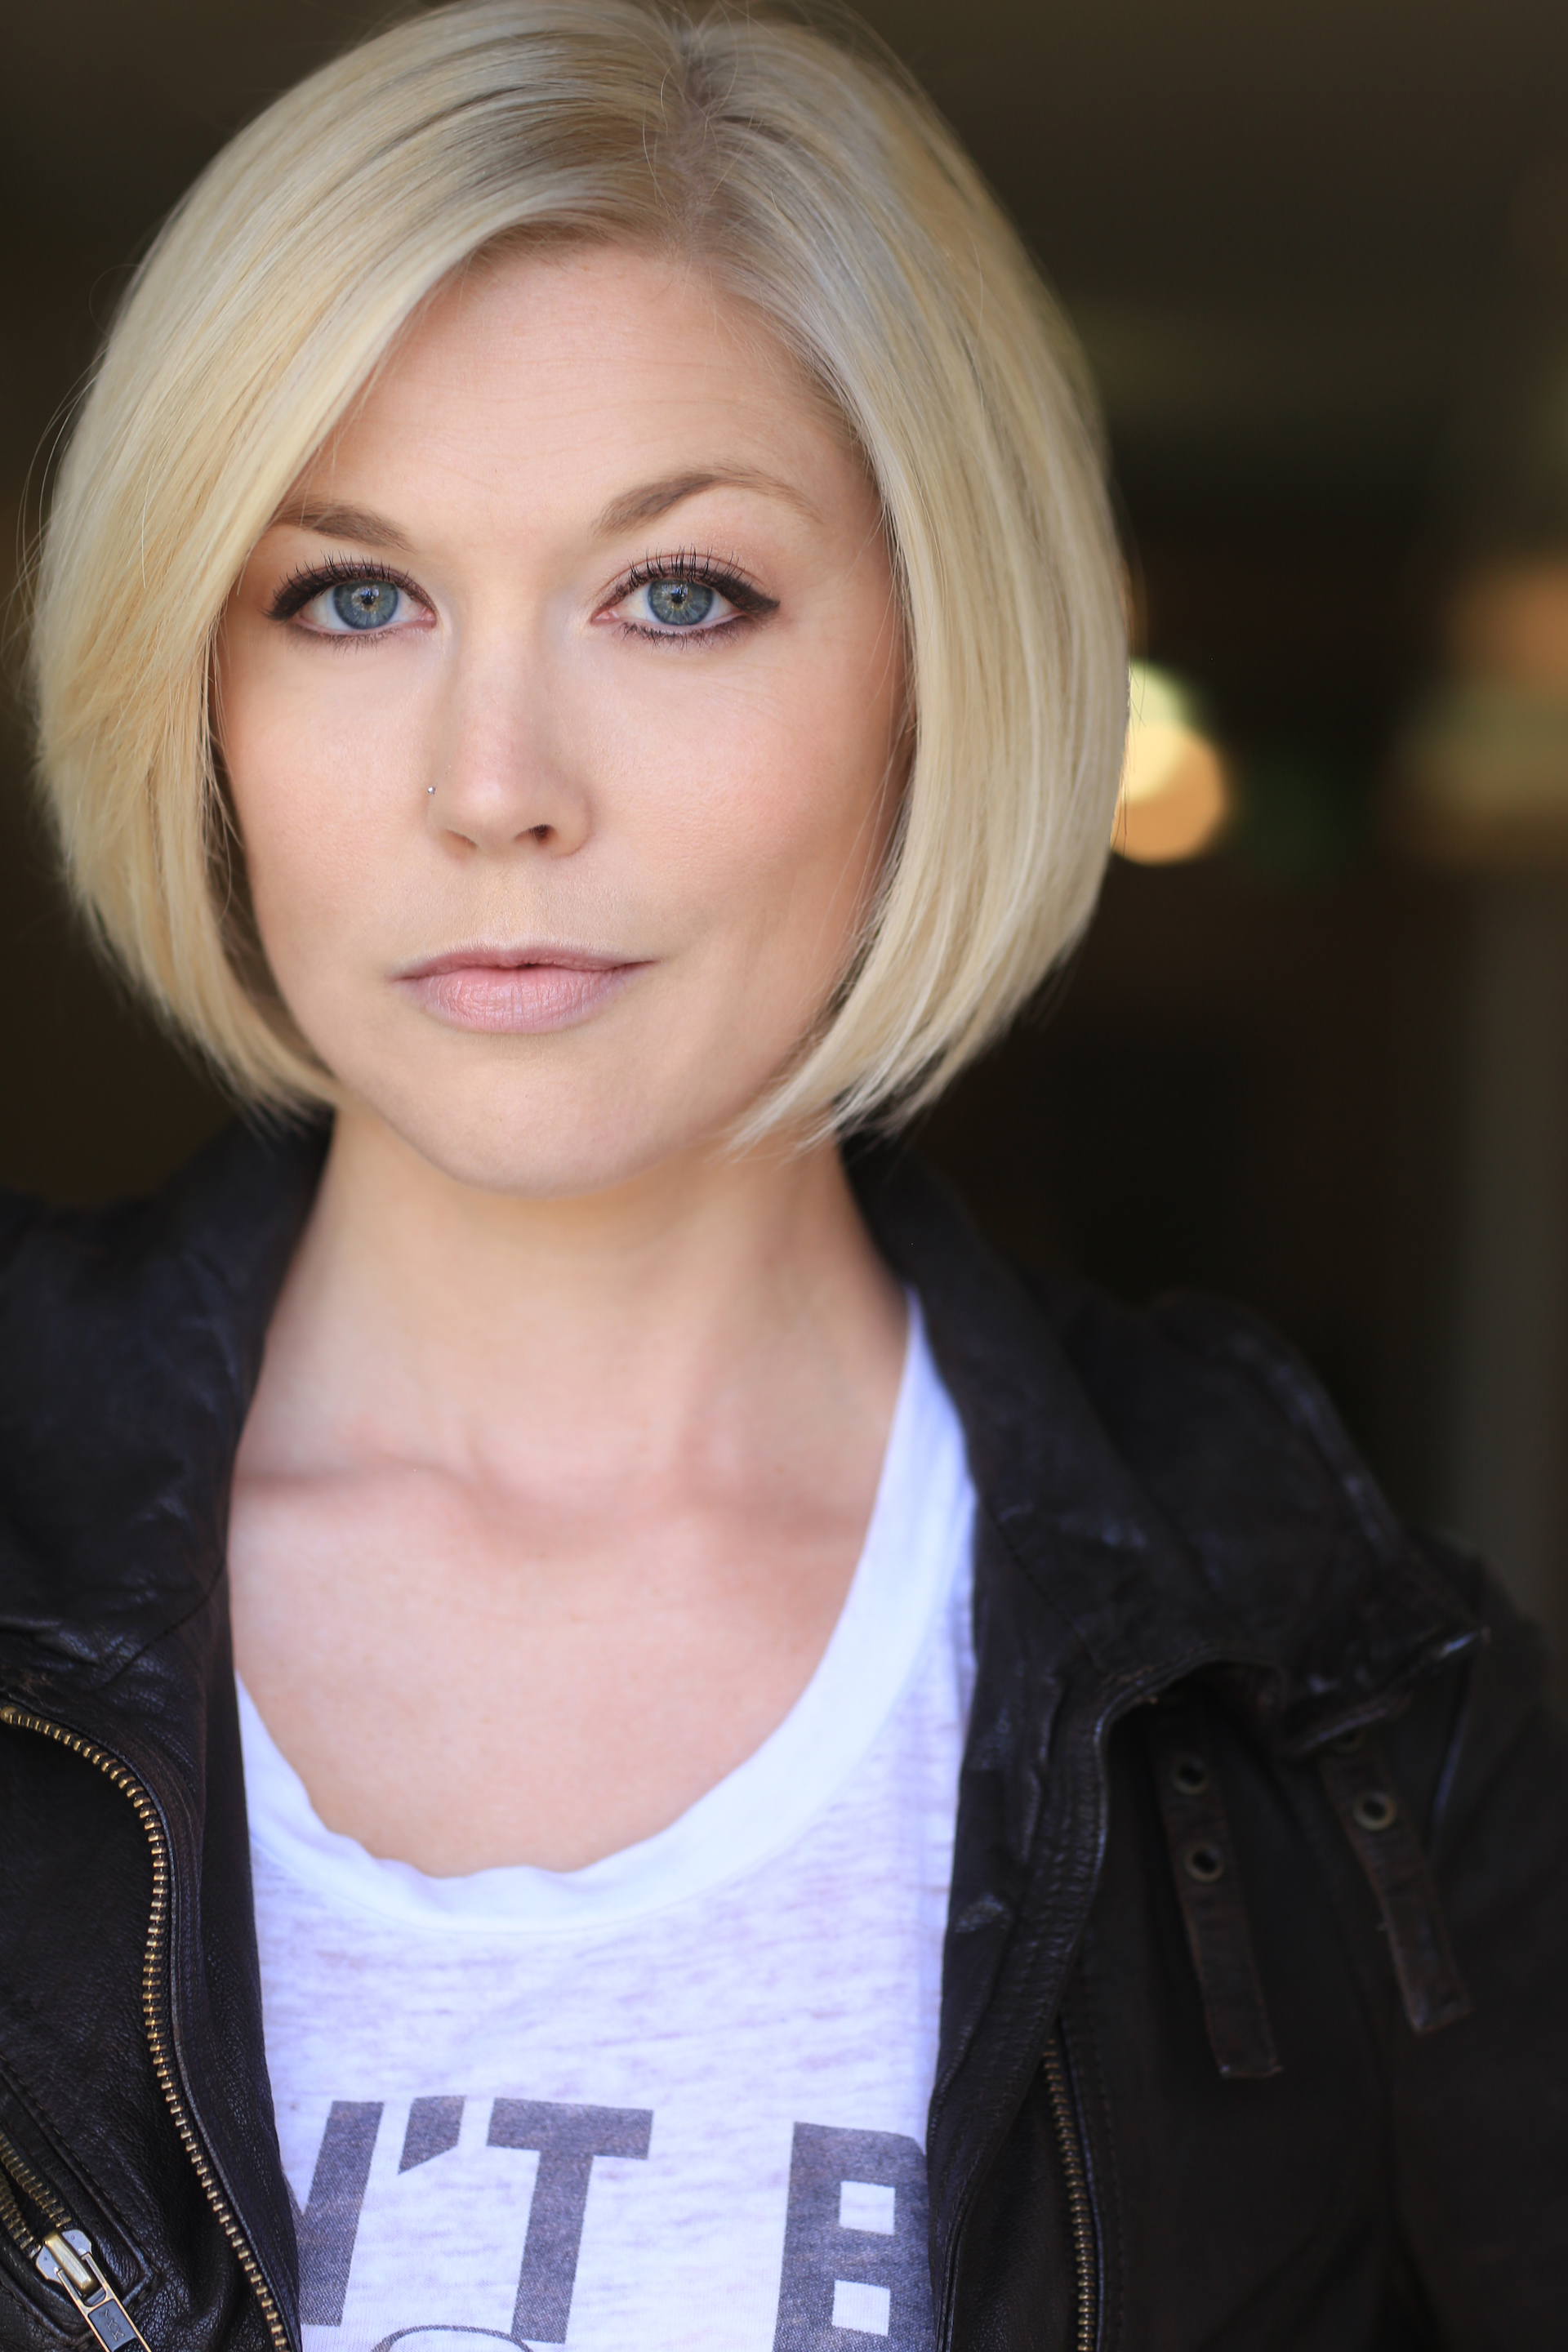 Haley Sims is a Los Angeles based actress. You can catch her on a few TV shows and in numerous independent film projects. She studies at Lesly Kahn's Studio as well as the Beverly Hills Playhouse, and her mom thinks she's super talented.